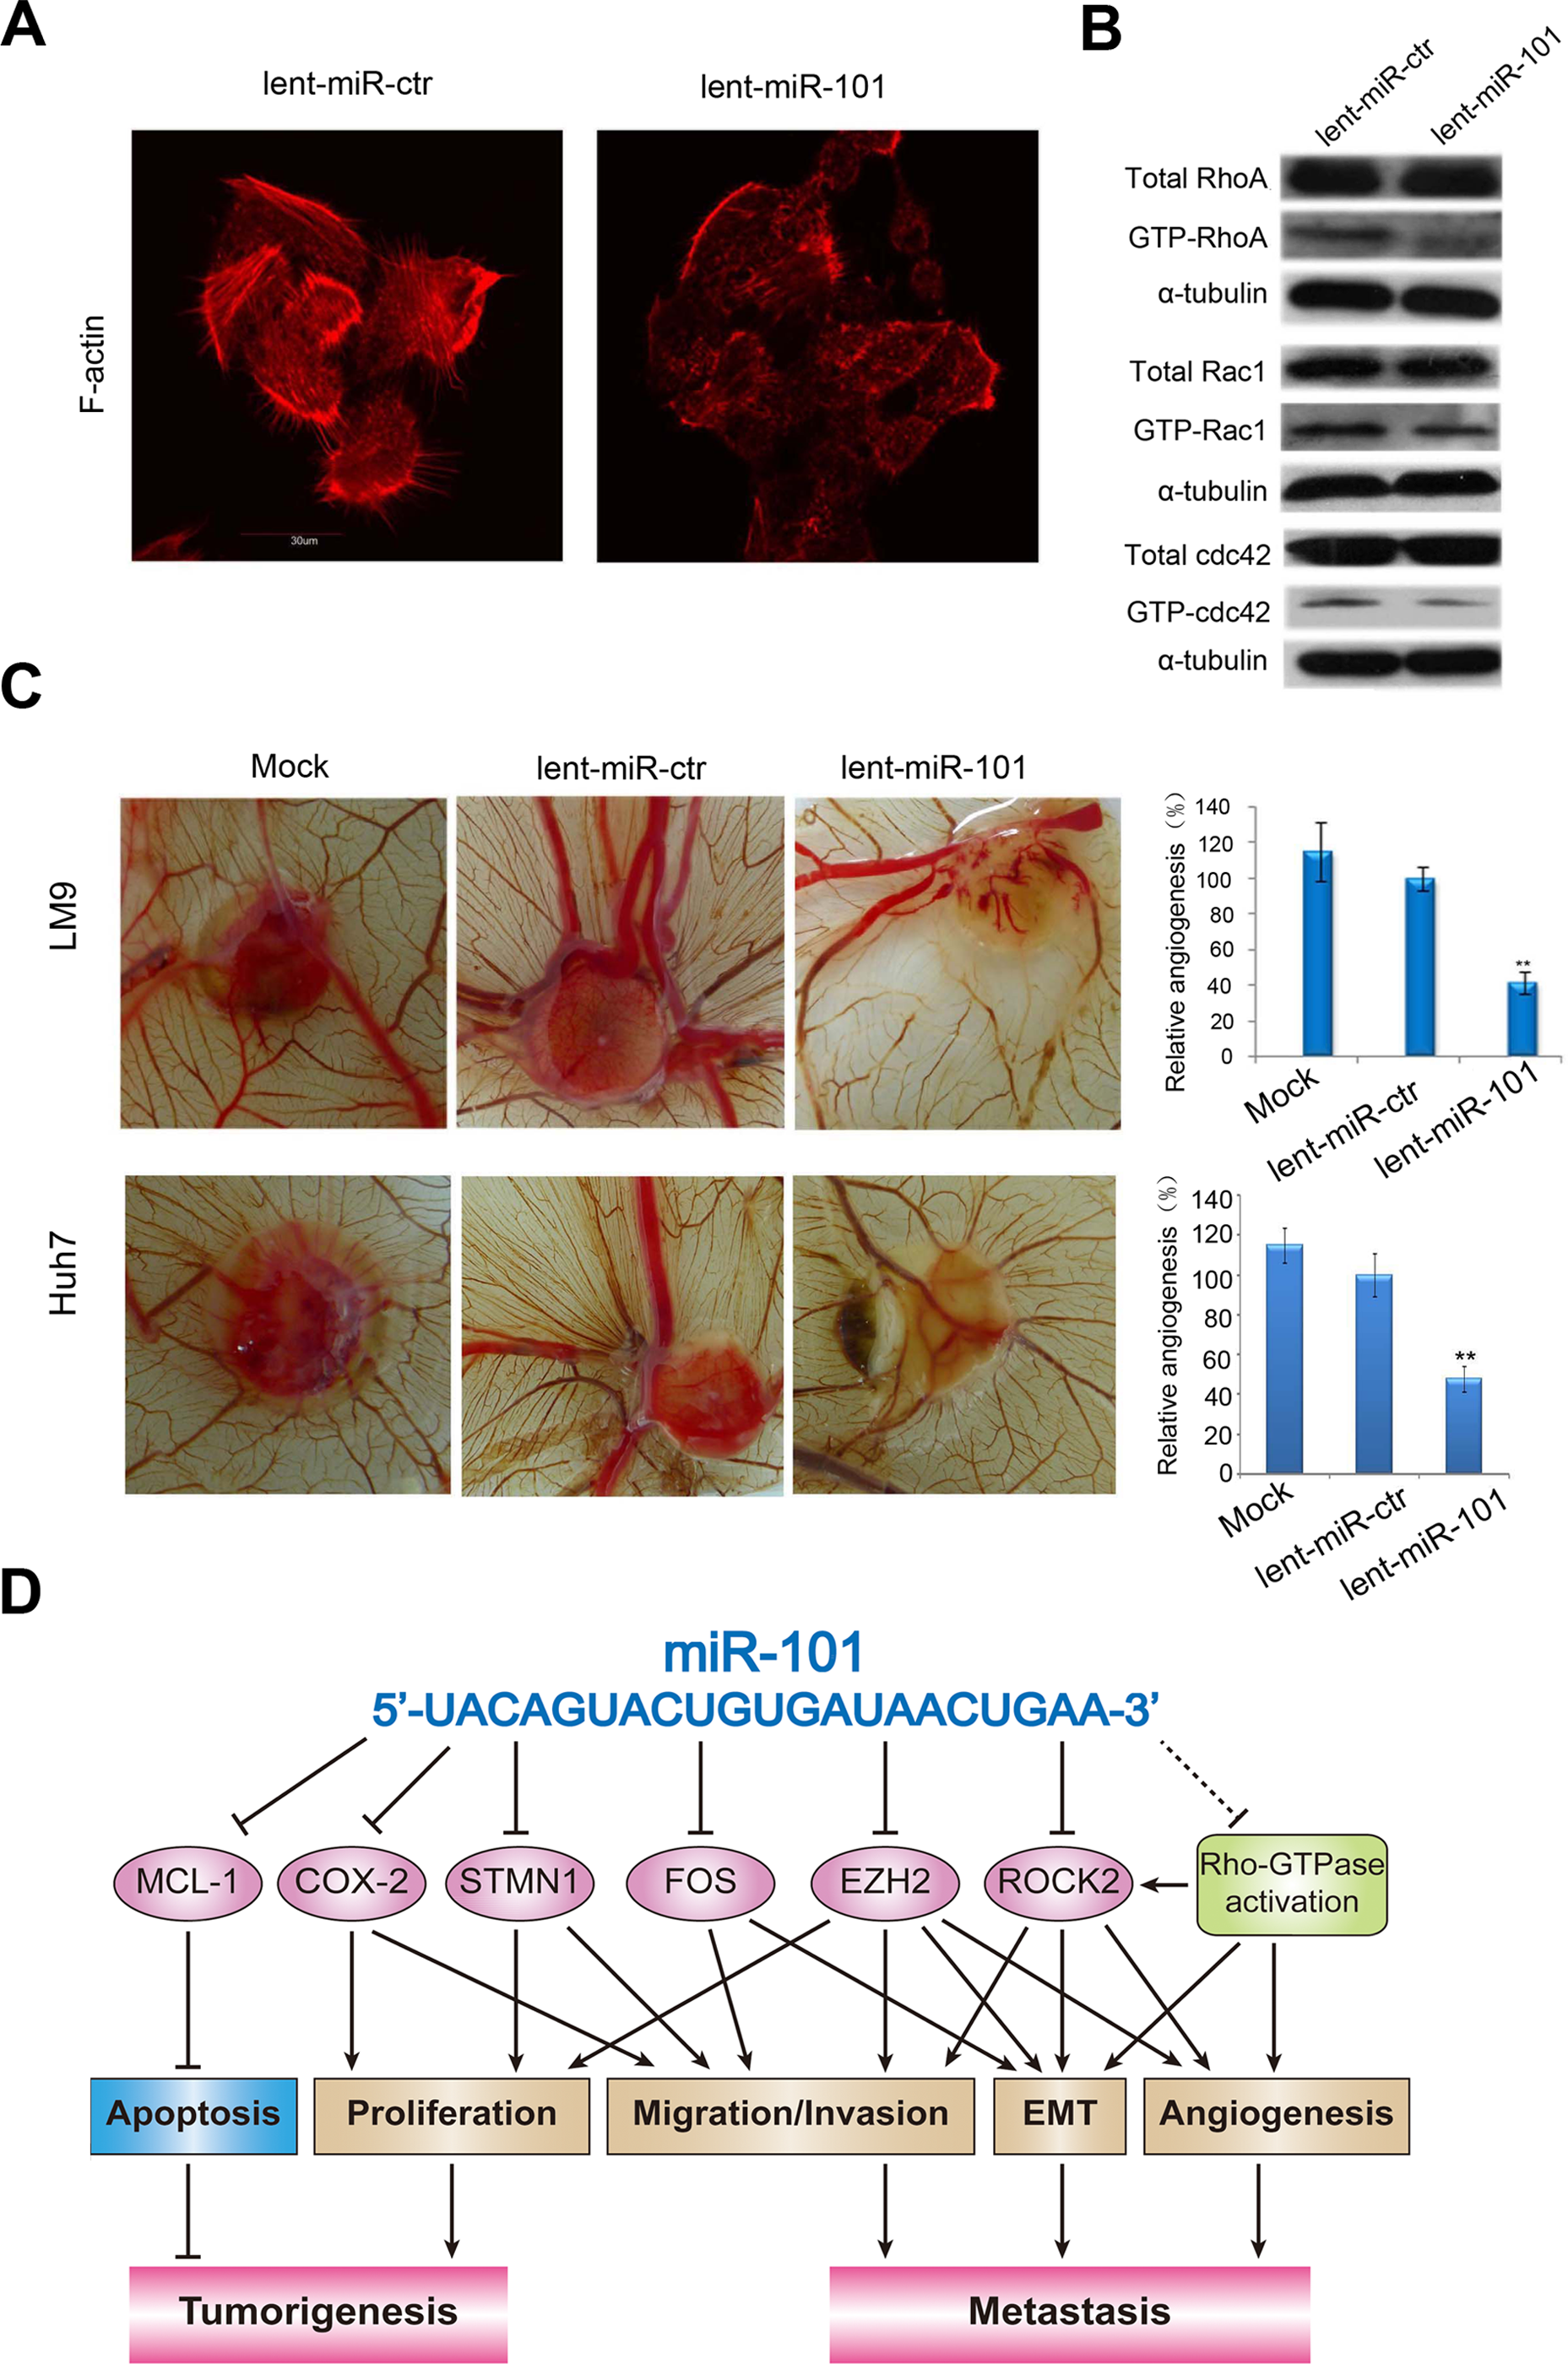 Ectopic overexpression of miR-101 inhibits stress fiber formation <i>in vitro</i> and angiogenesis in a CAM model, and a proposed regulatory loop of miR-101 in HCC tumorigenesis and metastasis.